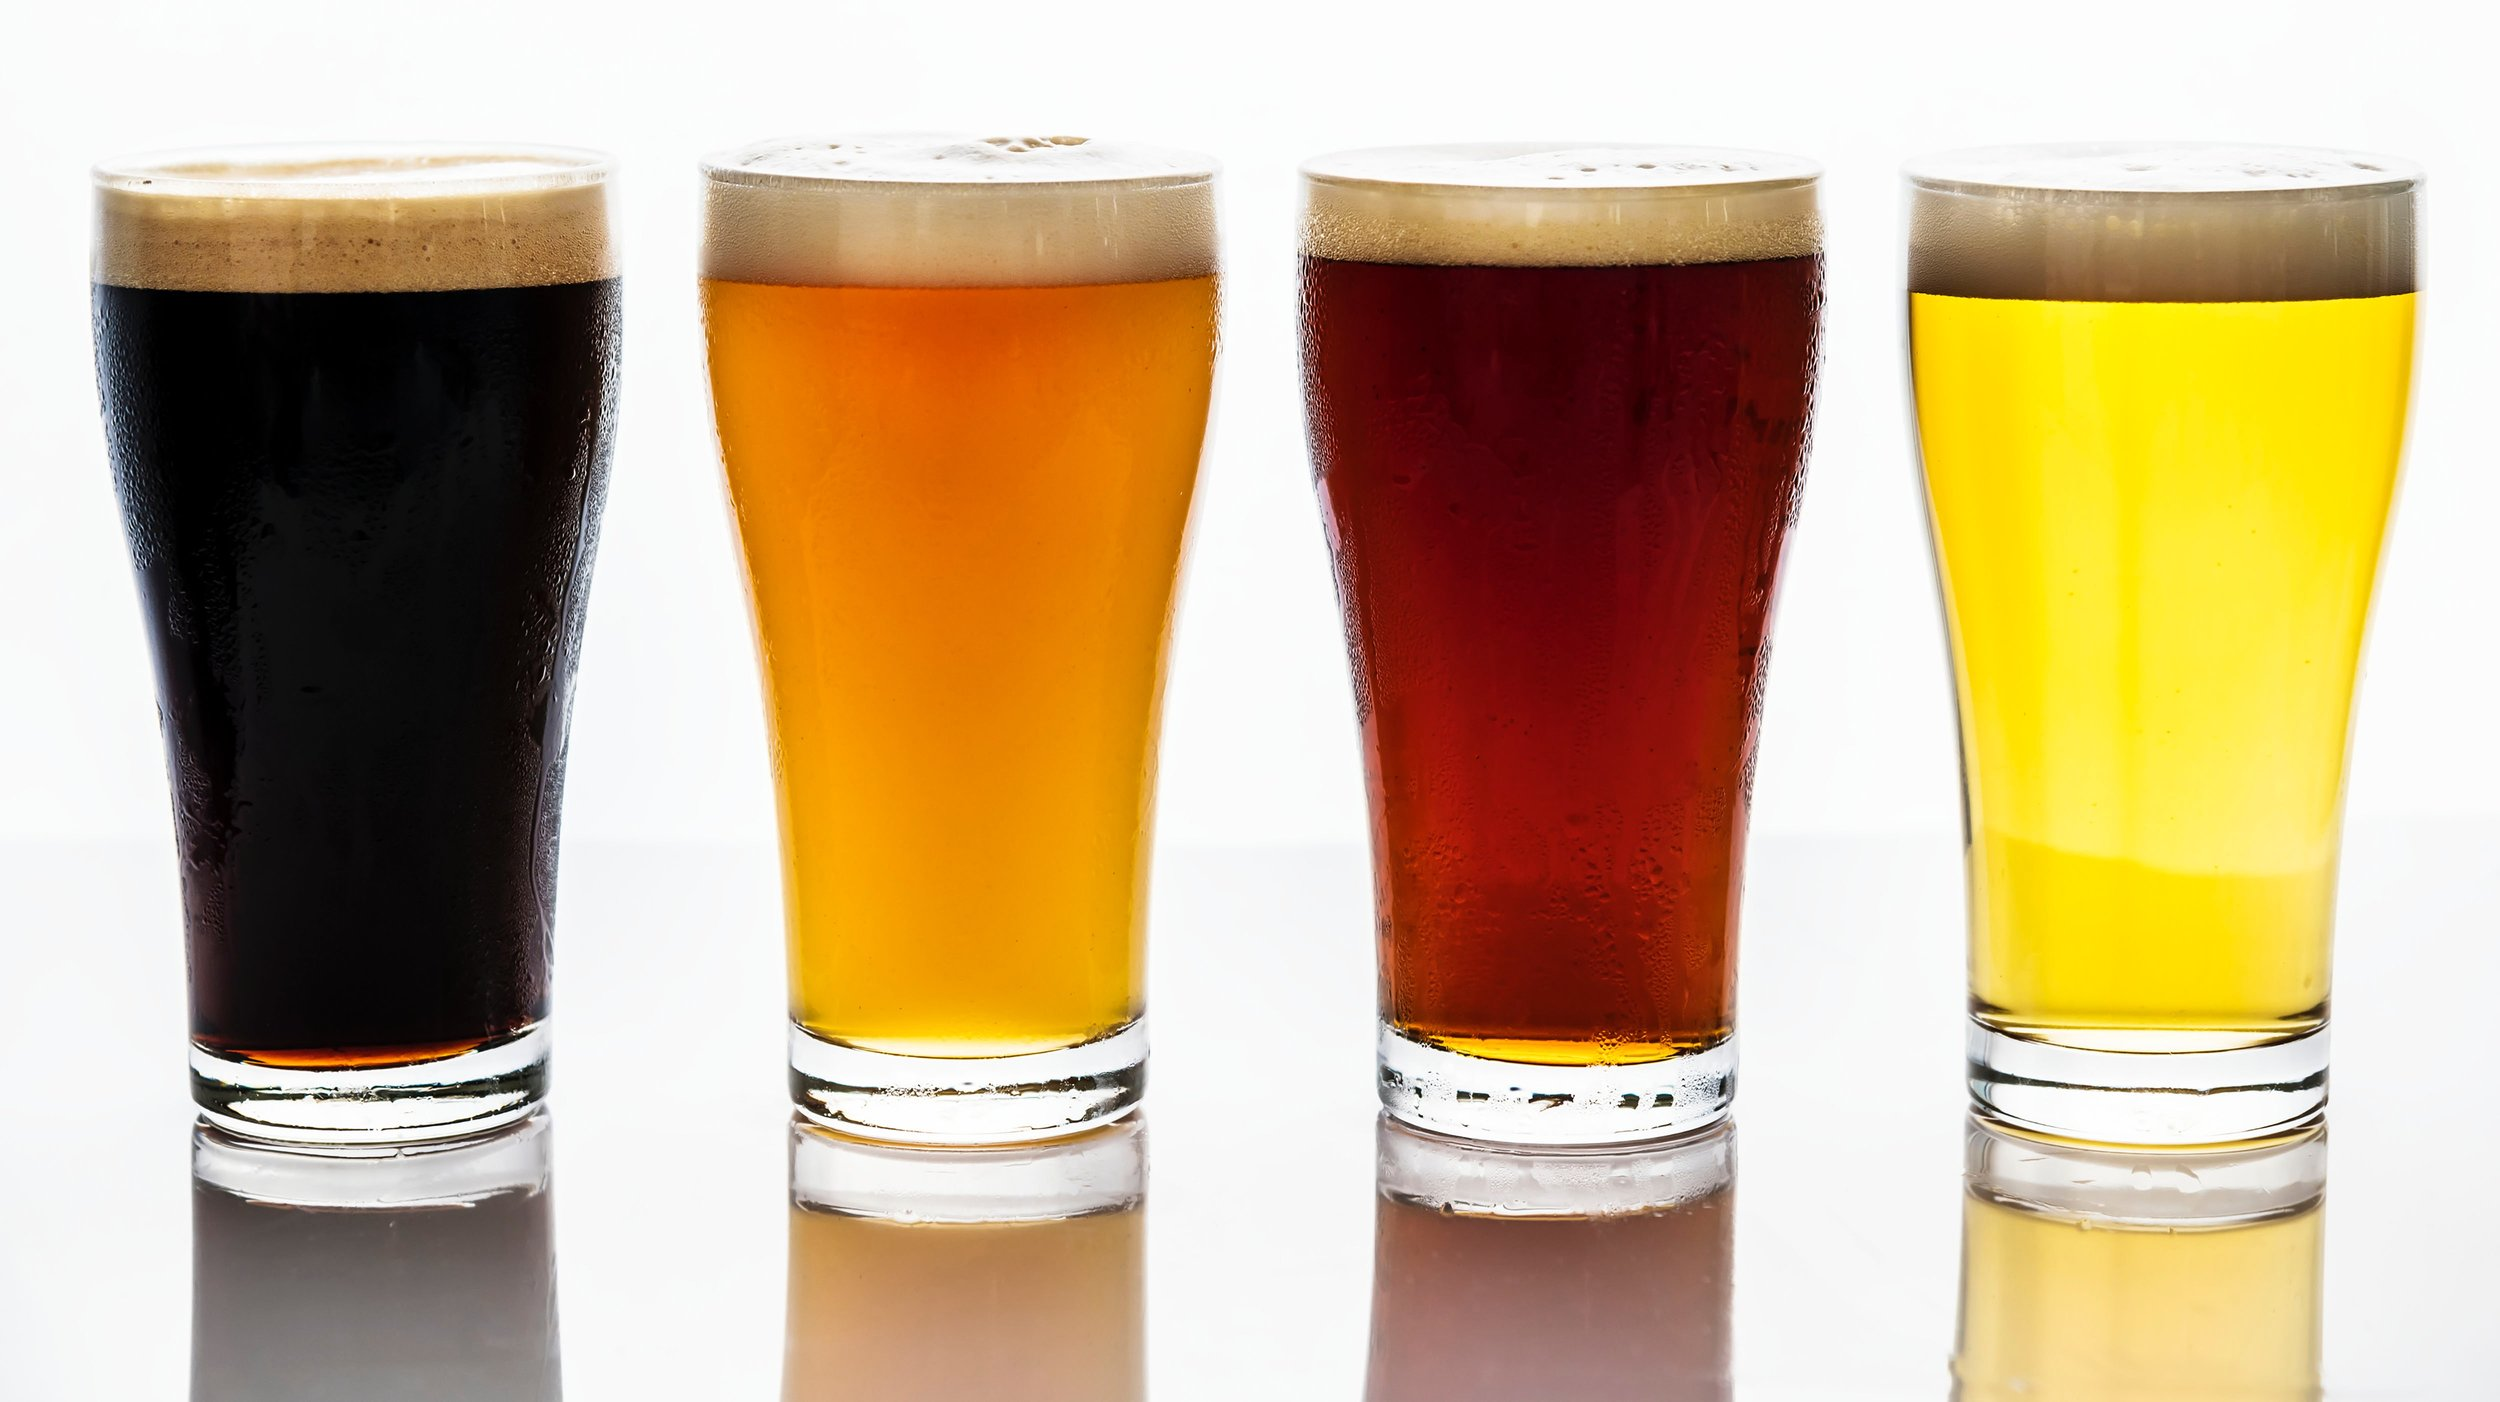 200 beers to choose from. - Did we say 200 beers? Yes, we did. When it comes to our beer selection we don't joke around. We proudly maintain the largest beer selection in Garden Grove, and Anaheim, CA. From your favorite local craft beer to your everyday national beers, we got you covered.